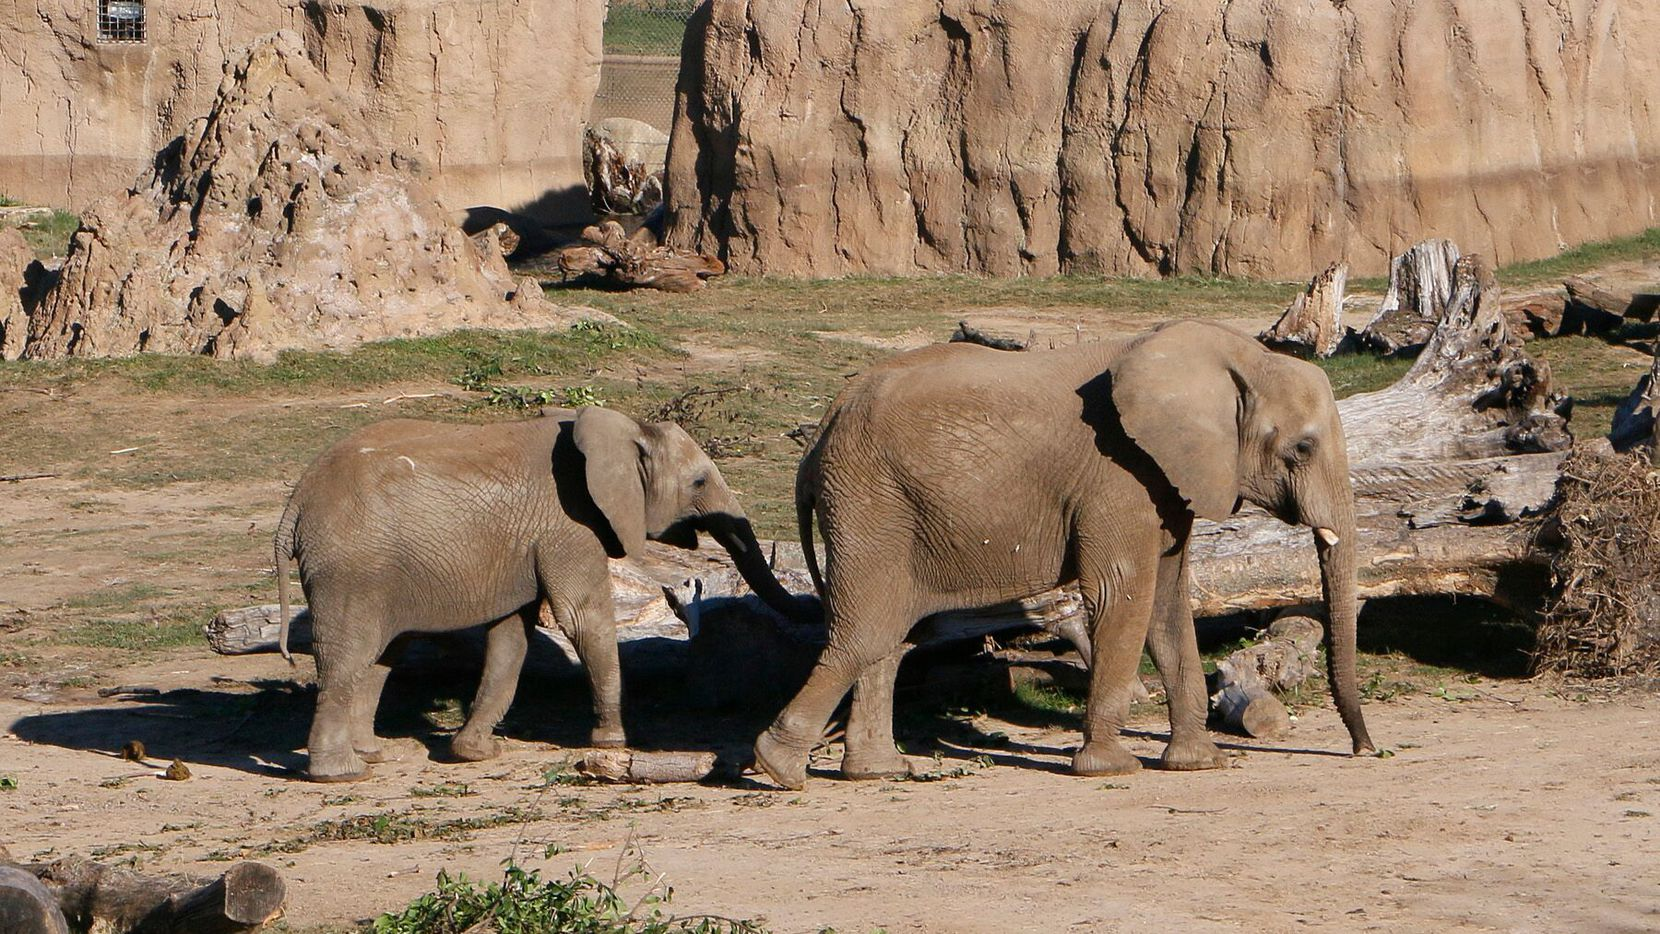 Nowalzi and her daughter, Amahle, roamed the Giants of the Savanna habitat at the Dallas Zoo. The two elephants were moved to the Fresno Chaffee Zoo in California.